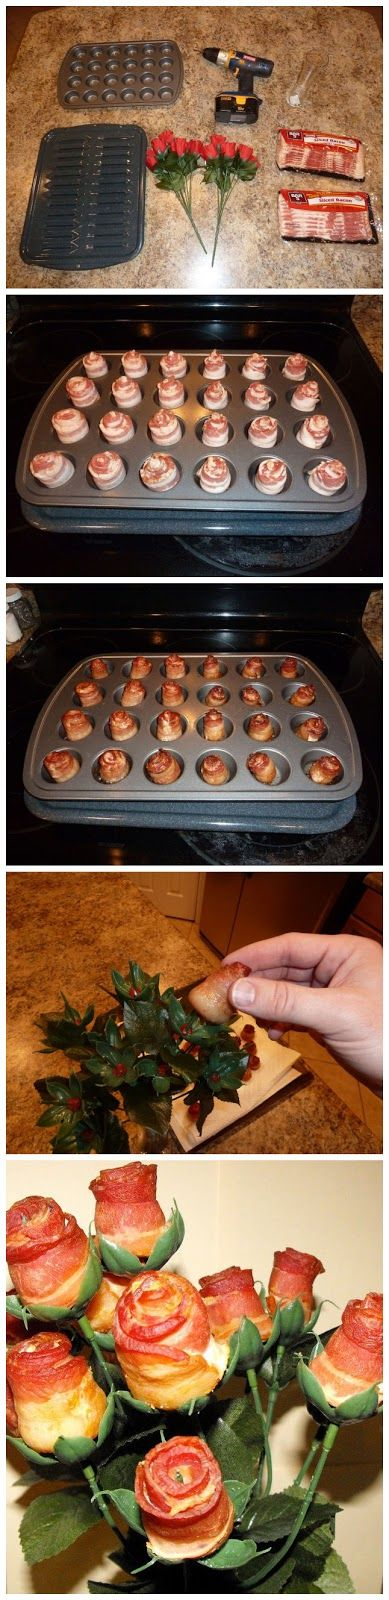 Bacon Roses - kiss recipe #recipe